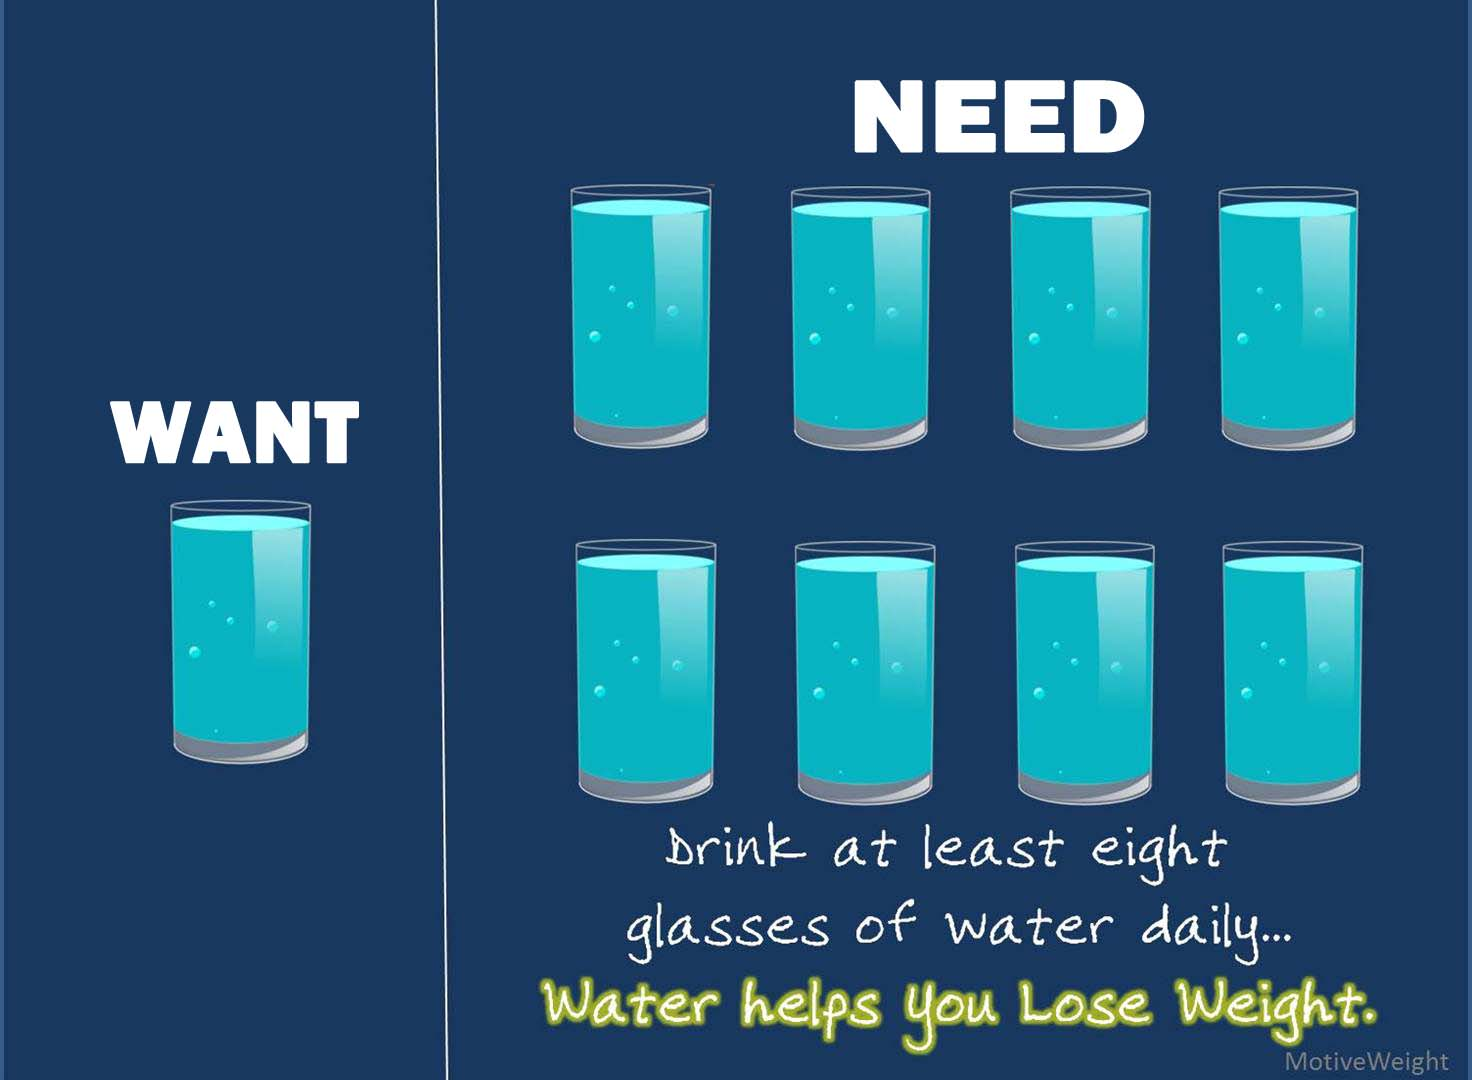 motiveweight: water helps you lose weight